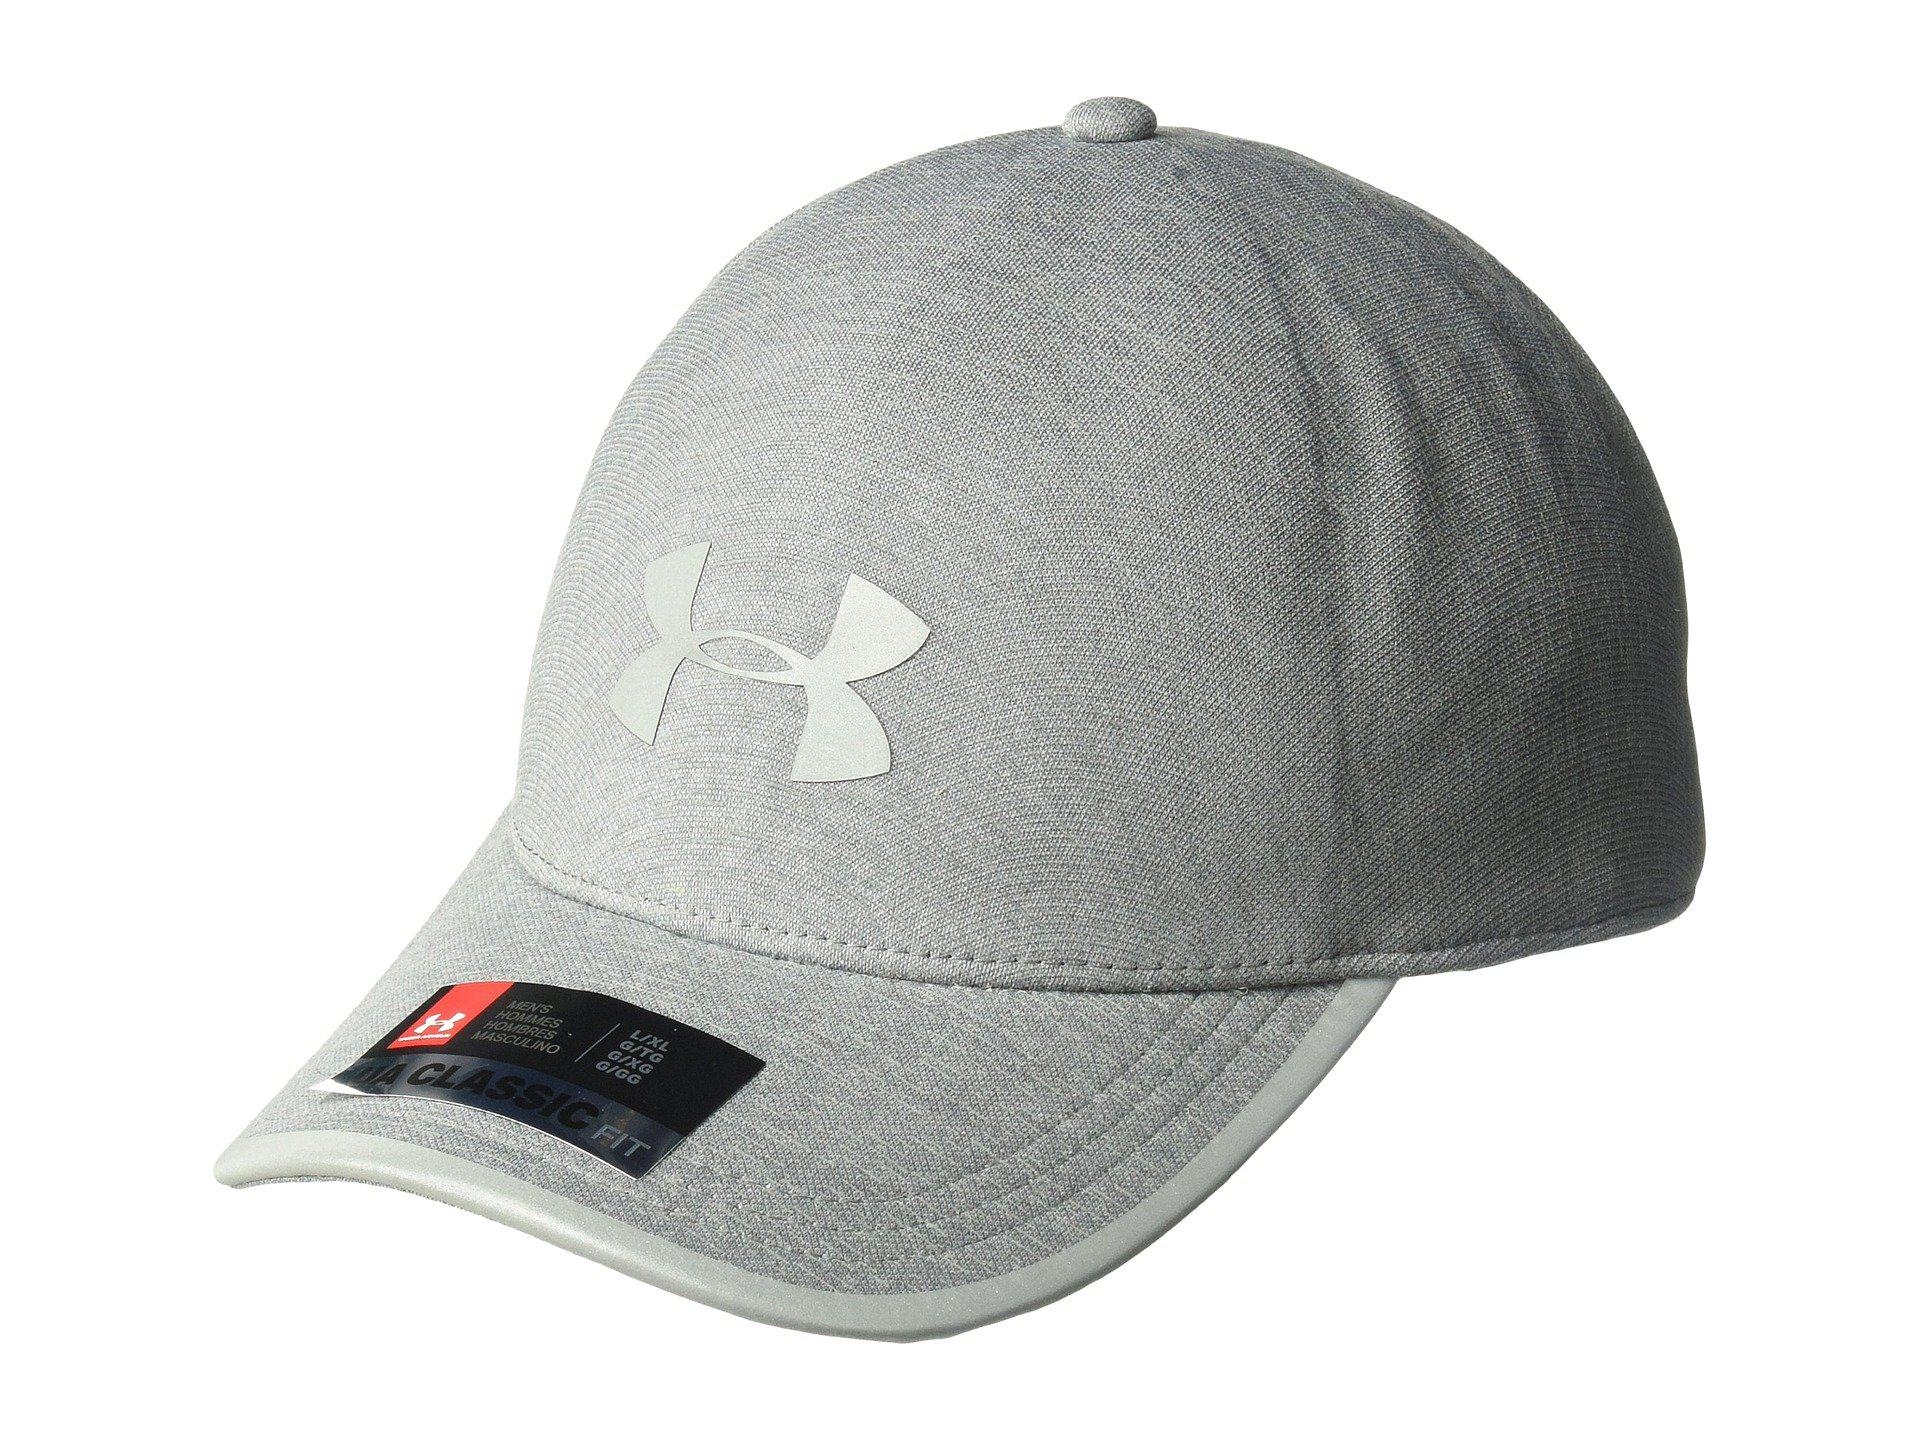 huge selection of cb279 b24d4 Under Armour. Men s Black Flash 1 Panel Cap